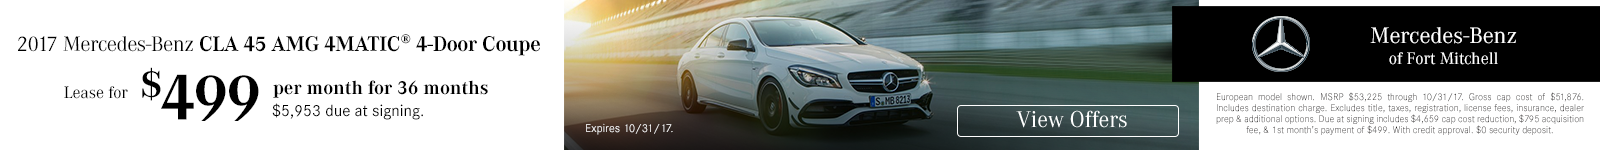 CLA45 Lease Special